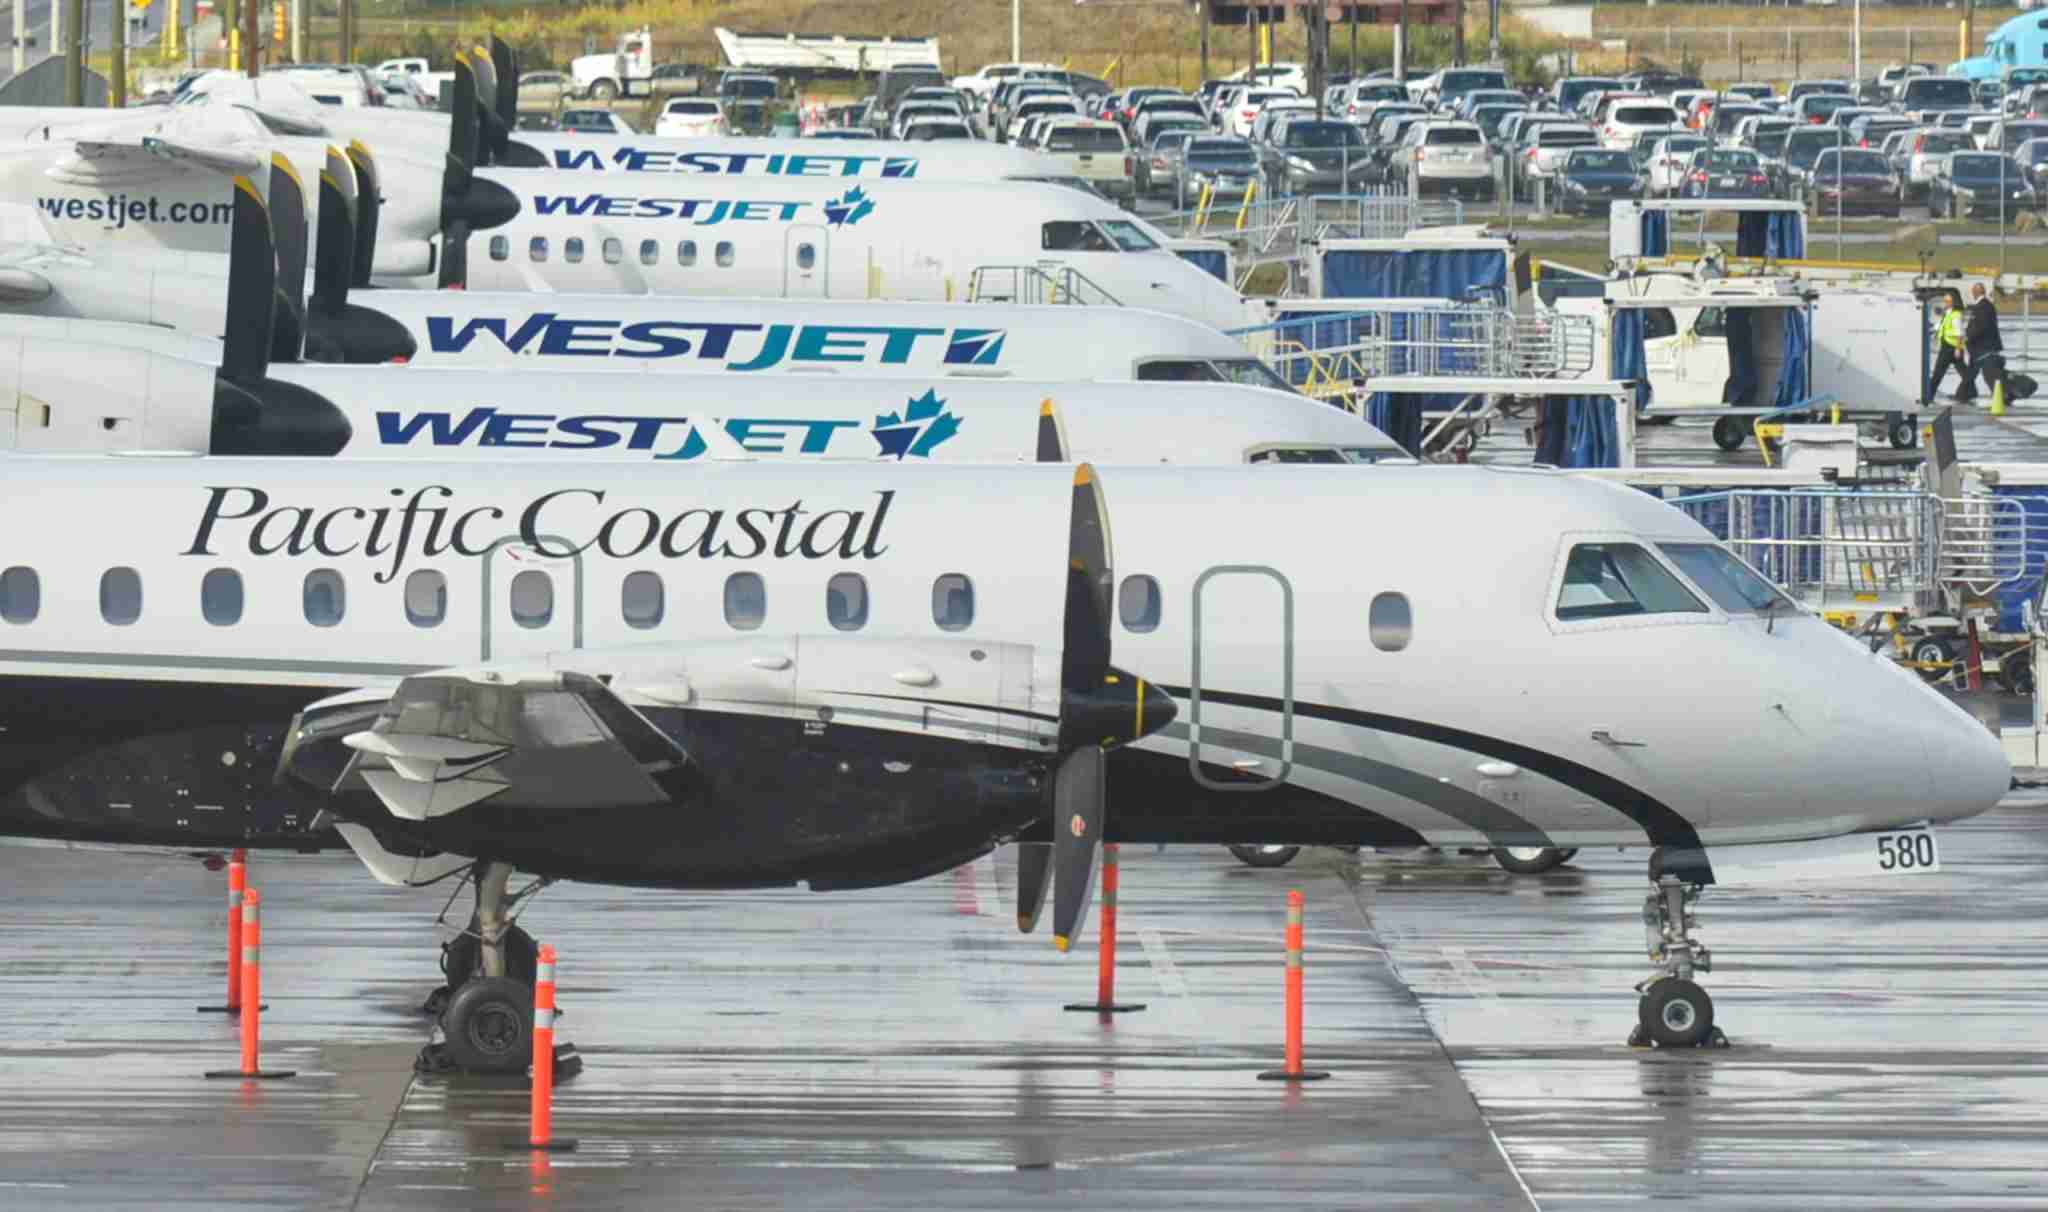 A lineup of regional turboprop planes that fly for WestJet are seen at Calgary International Airport on Sept. 10, 2018 (Photo by Artur Widak/NurPhoto via Getty Images)